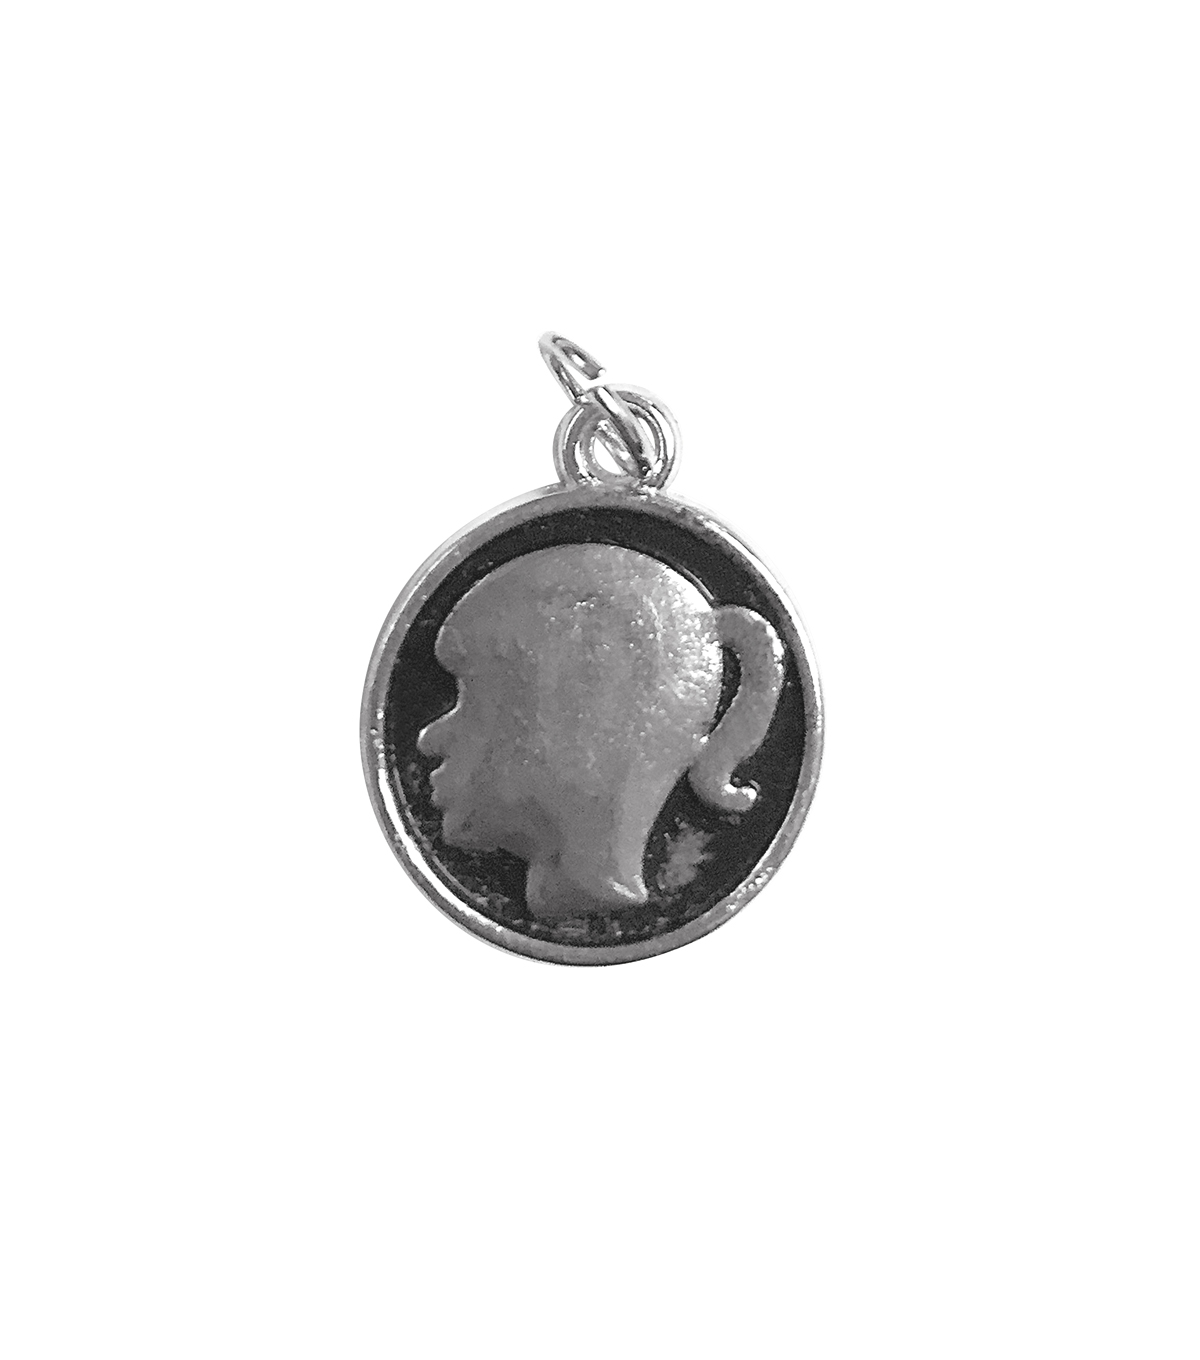 Blue Moon Beads Single Charm Girl Silhouette Silver